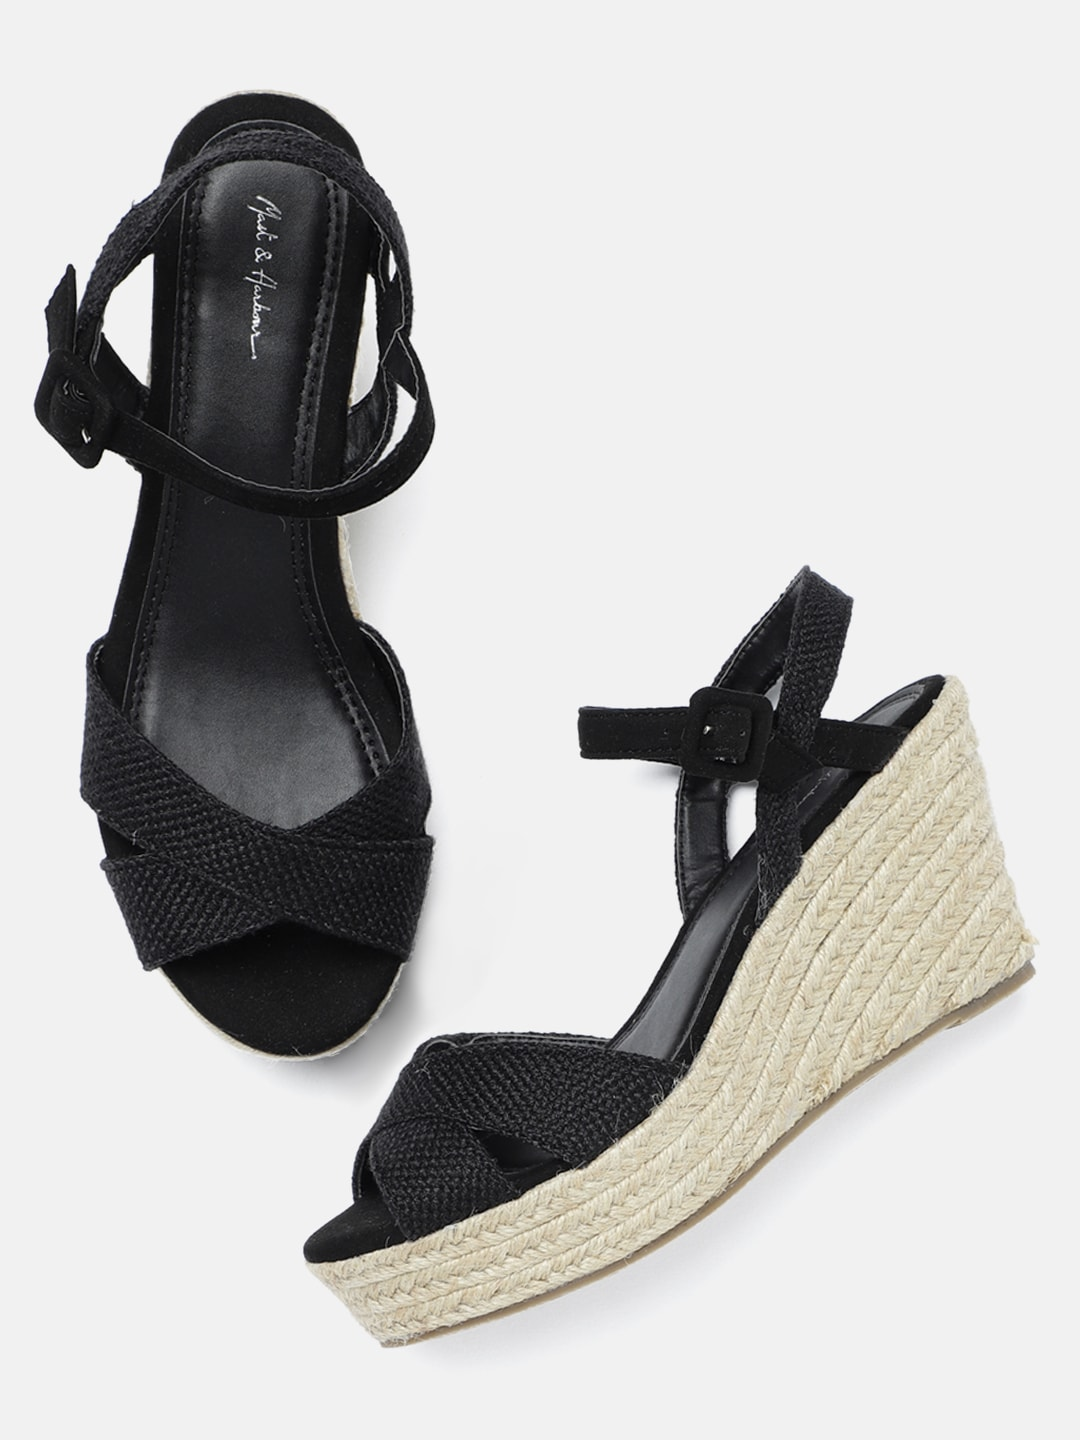 1db43bb332f8 Womens Wedges - Buy Wedges for Women Online at Best Price